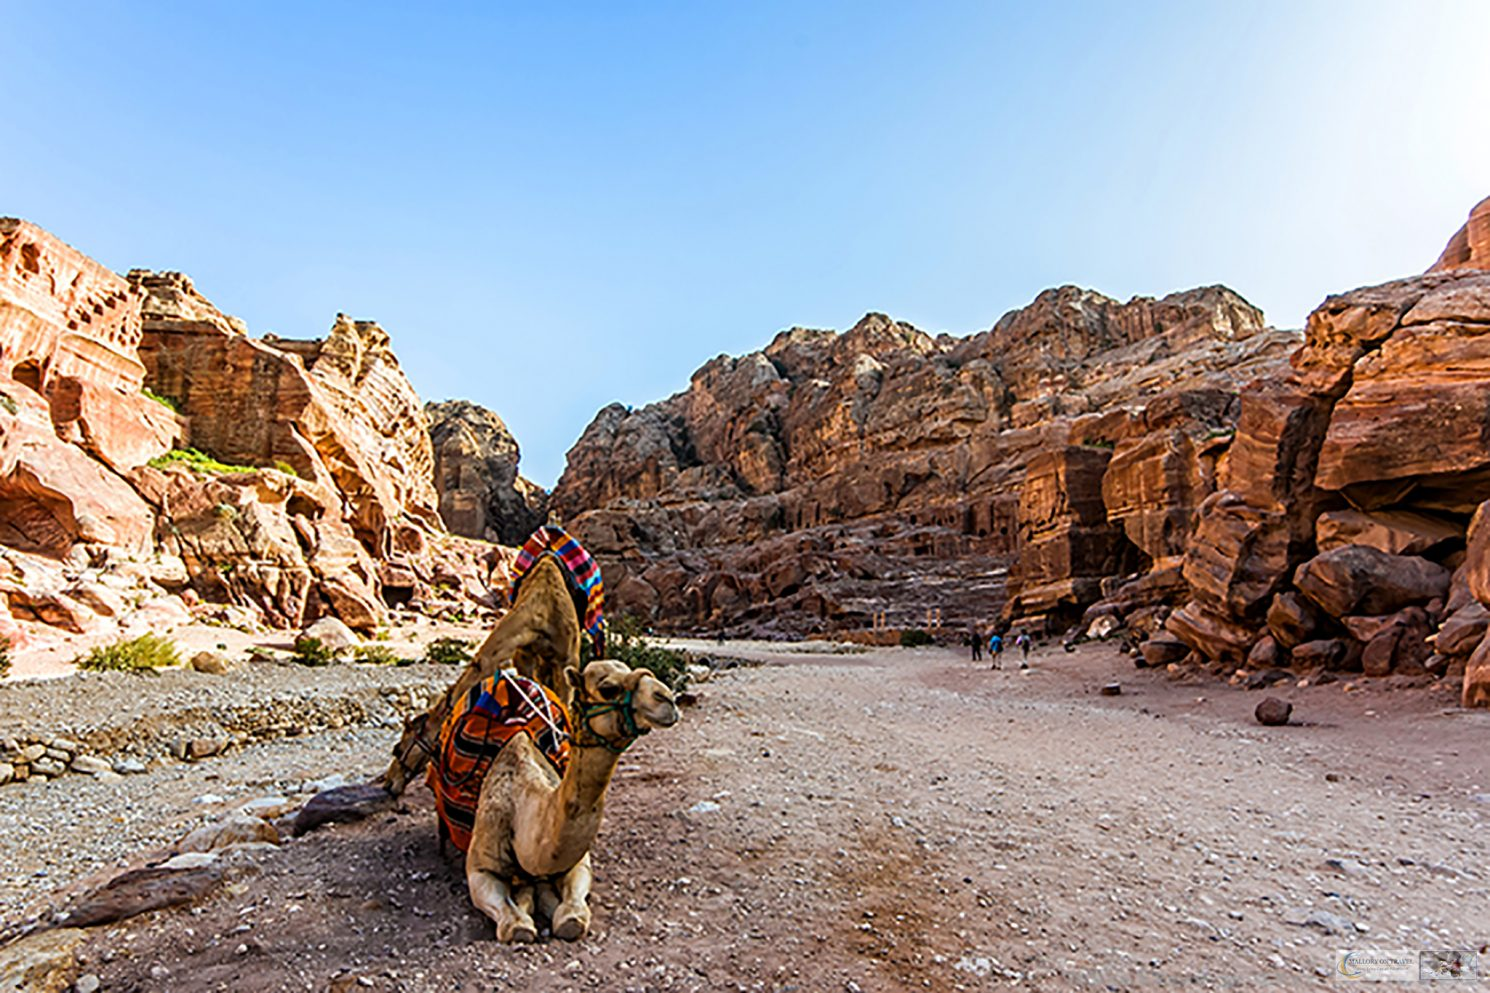 Camels or the ships of the desert in front of rock formations in Petra, Jordan on Mallory on Travel adventure, adventure travel, photography iain_mallory_jordan1408887